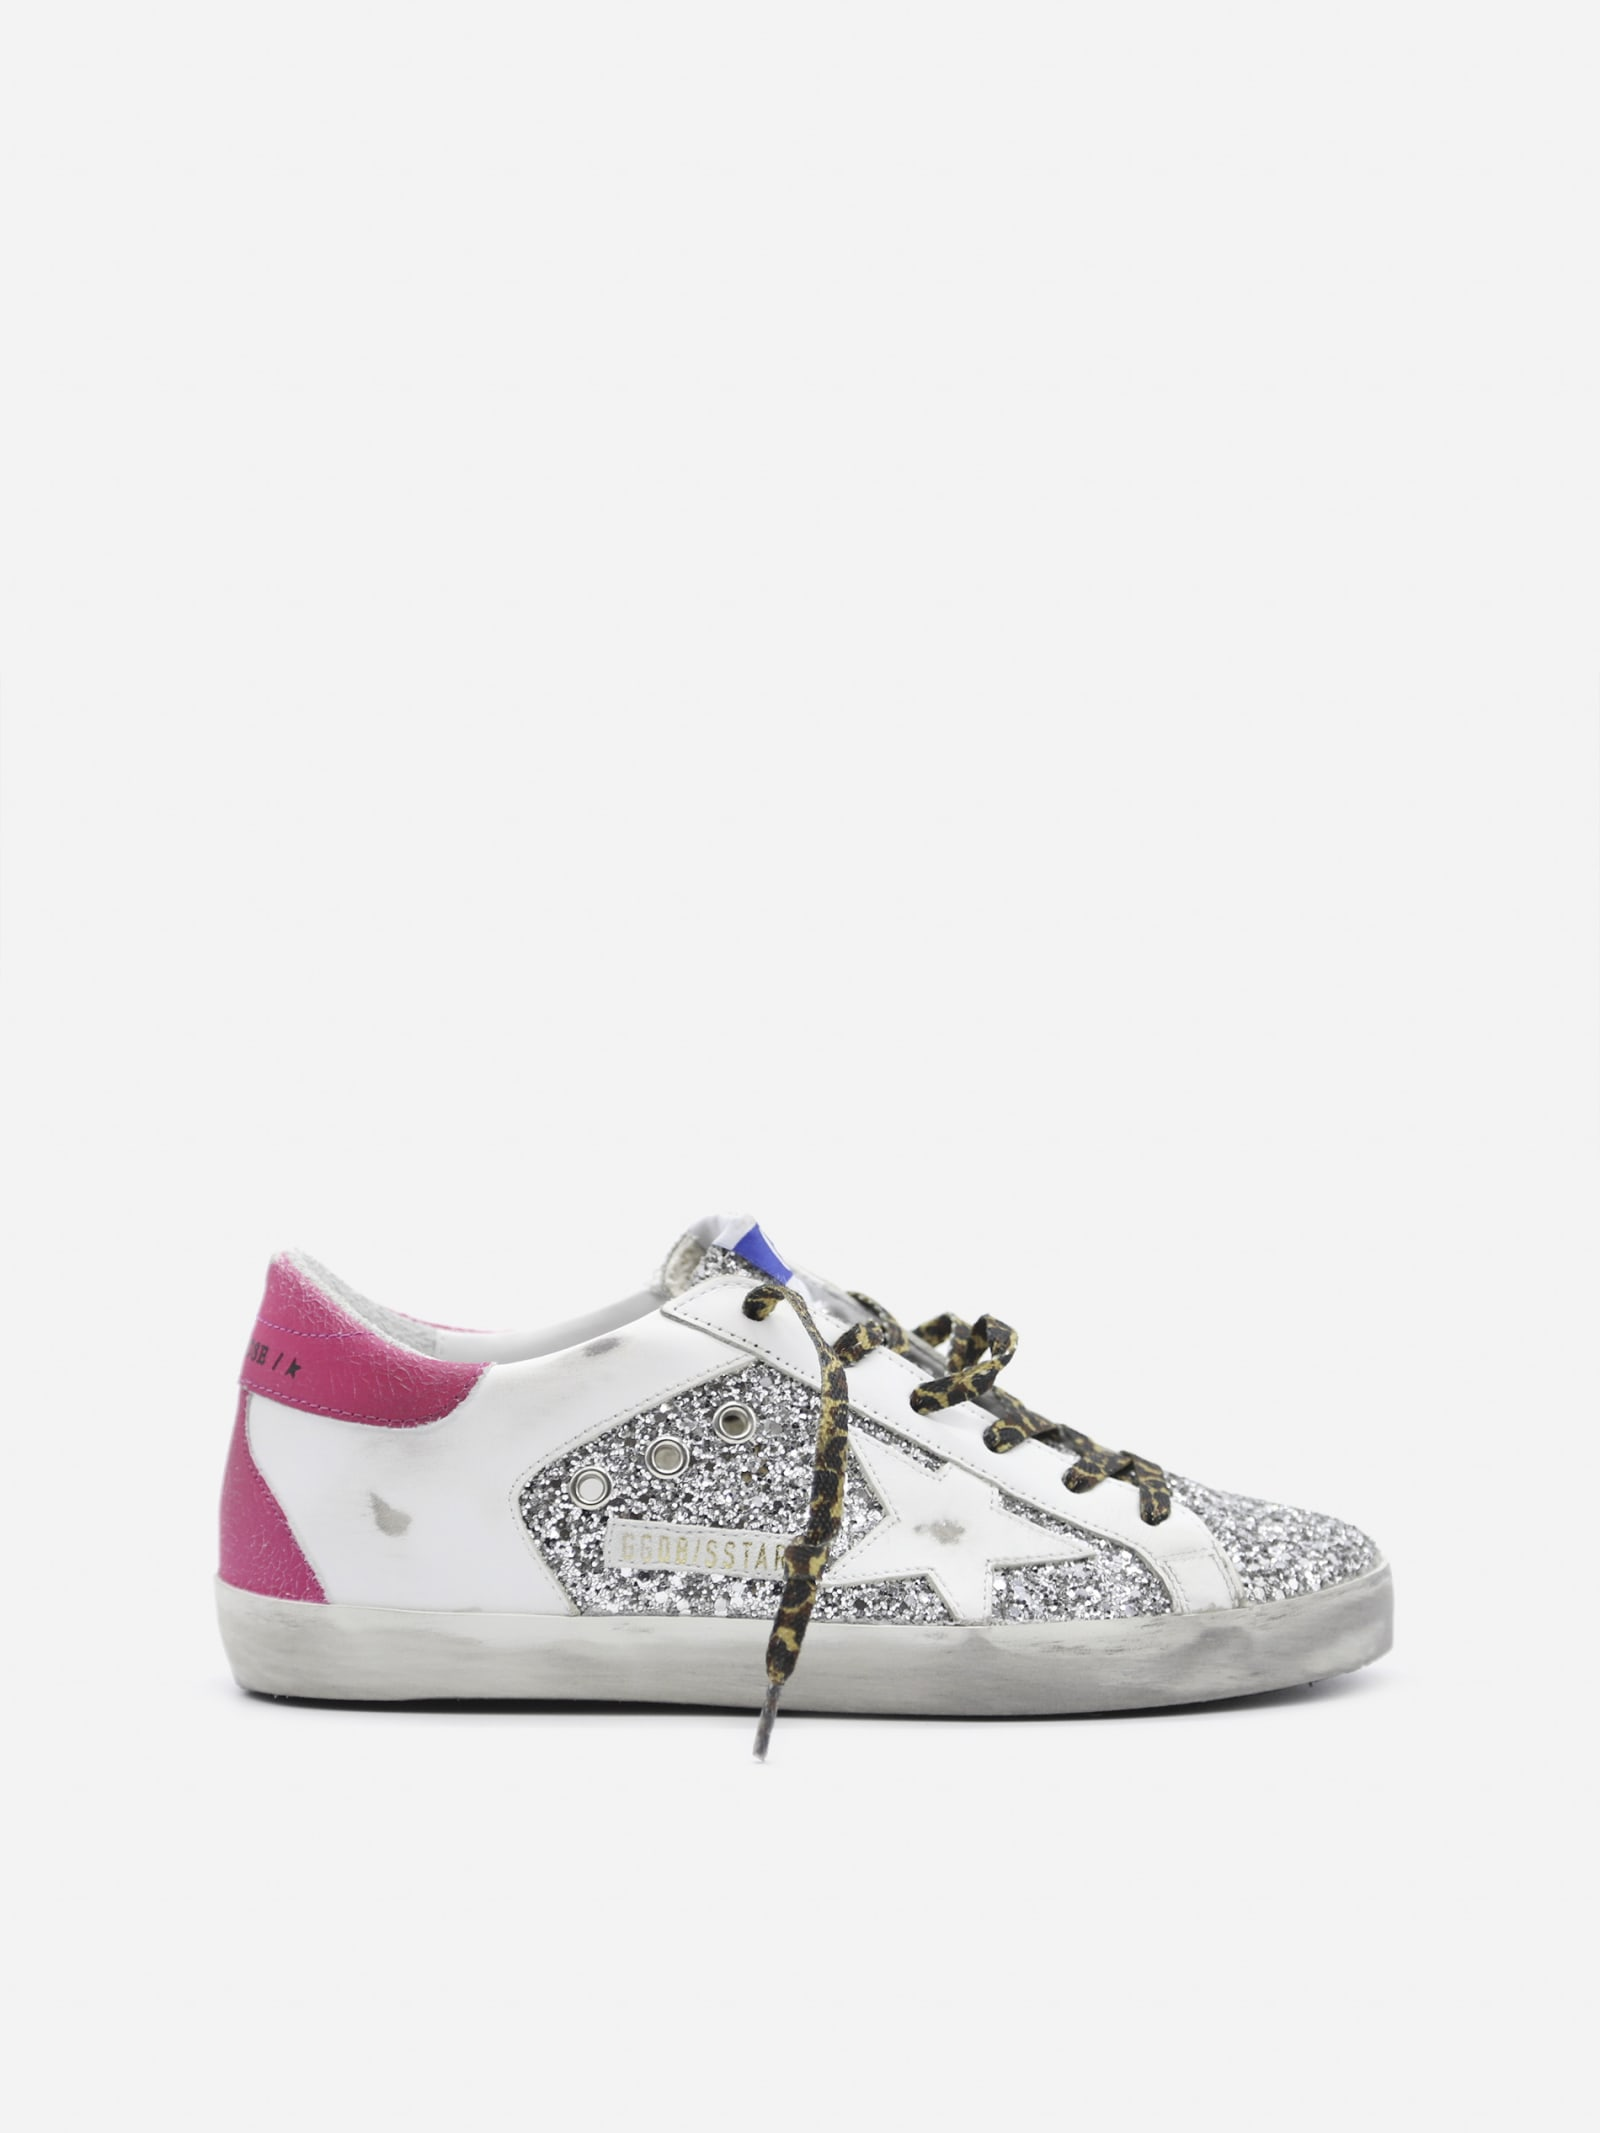 Golden Goose Superstar Sneakers In Leather With Suede And Glitter Inserts